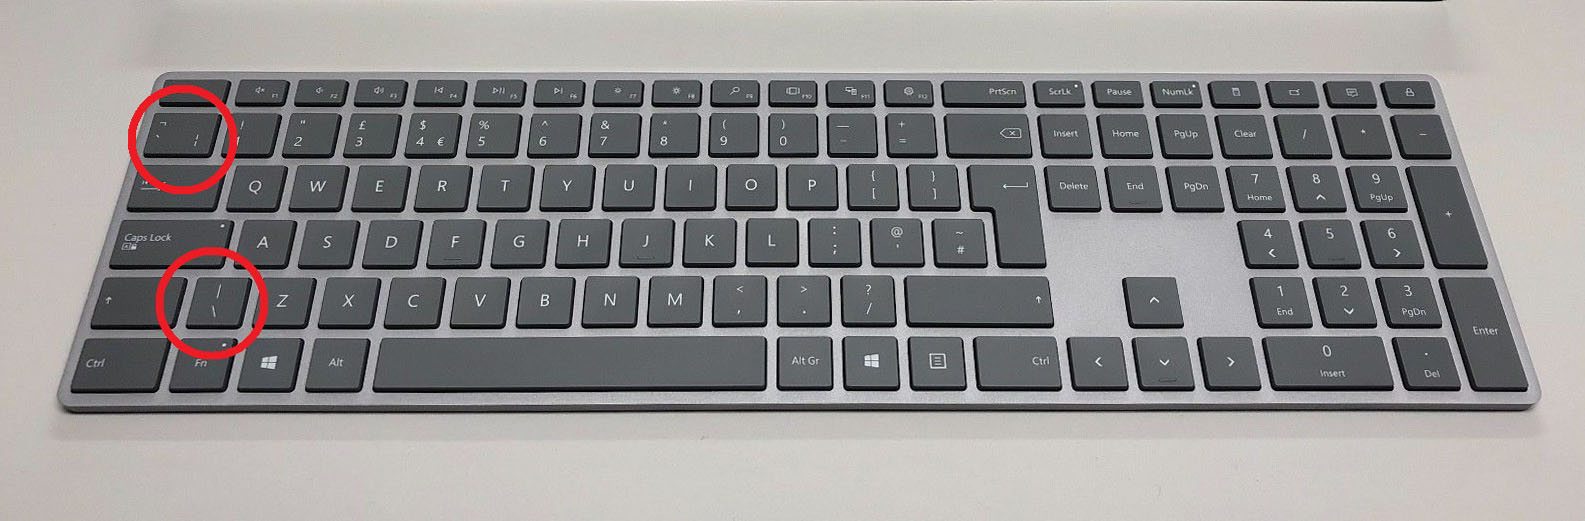 Why is the UK Keyboard layout wrong? - Microsoft Community